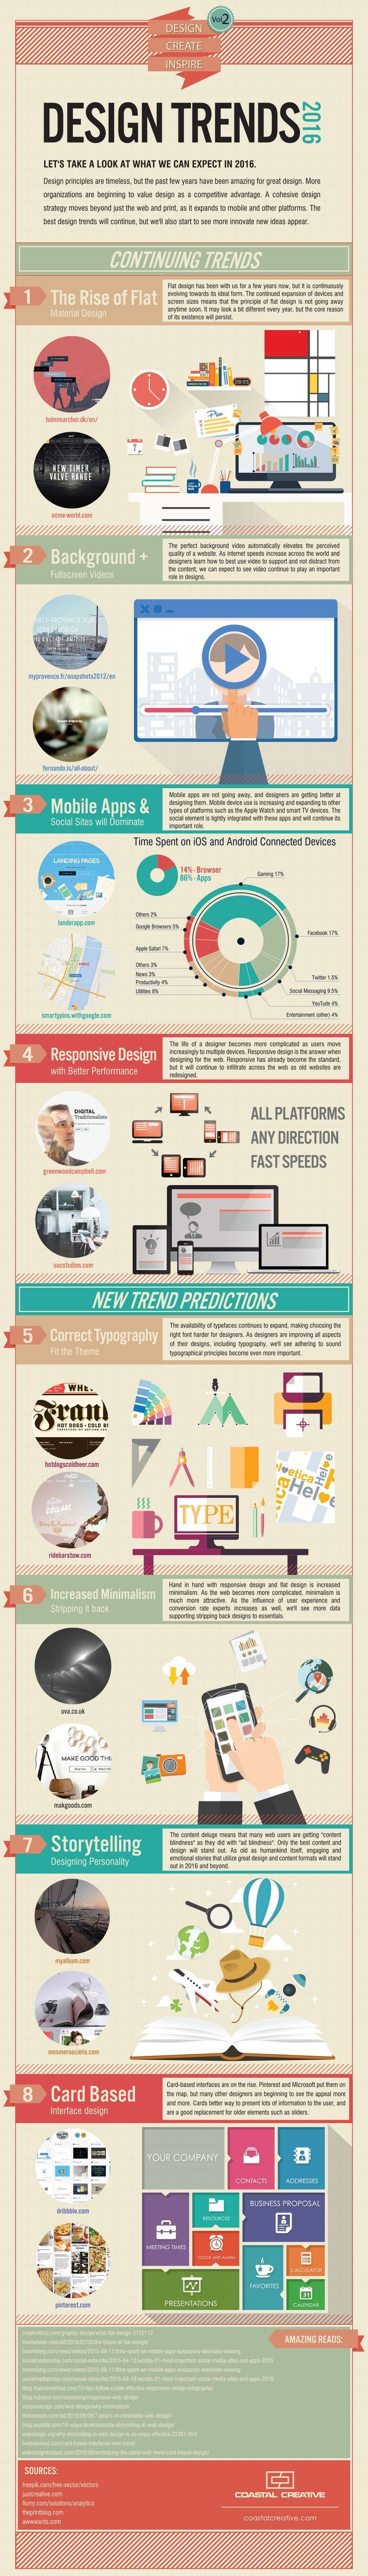 8 Web Design Trends That Are Bound to Be Huge in 2016 (Infographic)